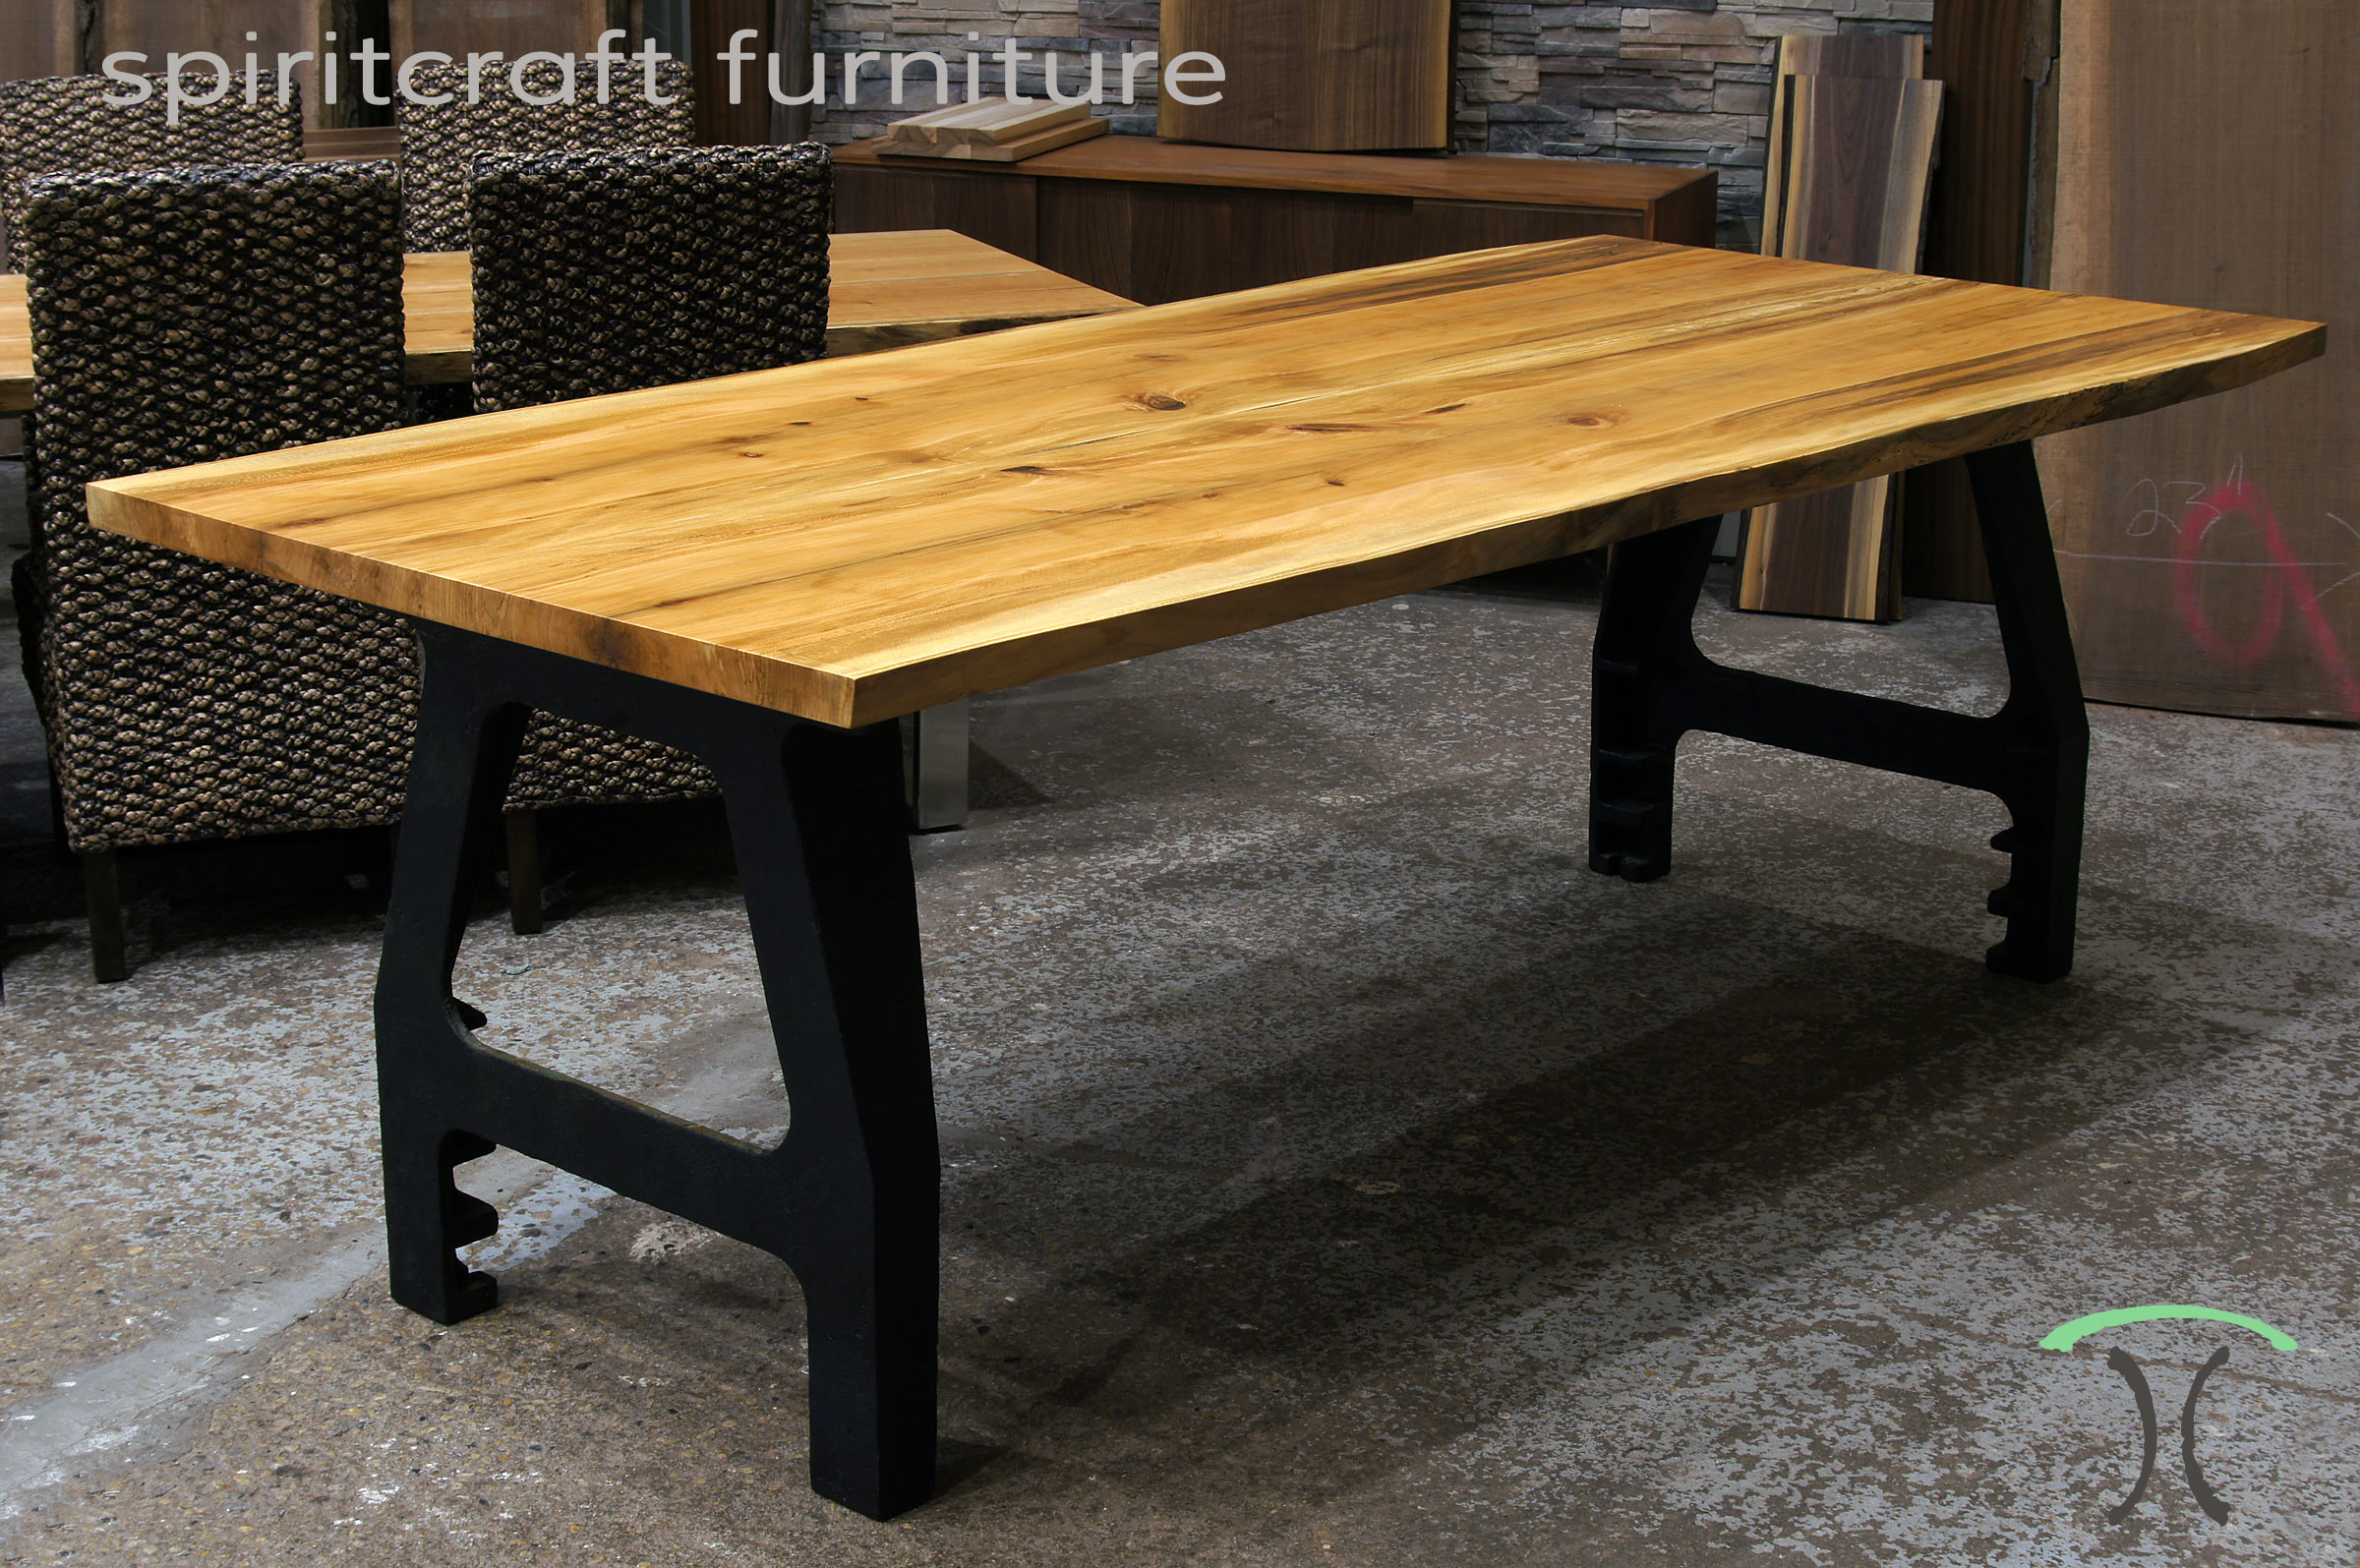 Sycamore Live Edge Dining Table with cast iron legs in our Chicago Area Live Edge Furniture Showroom